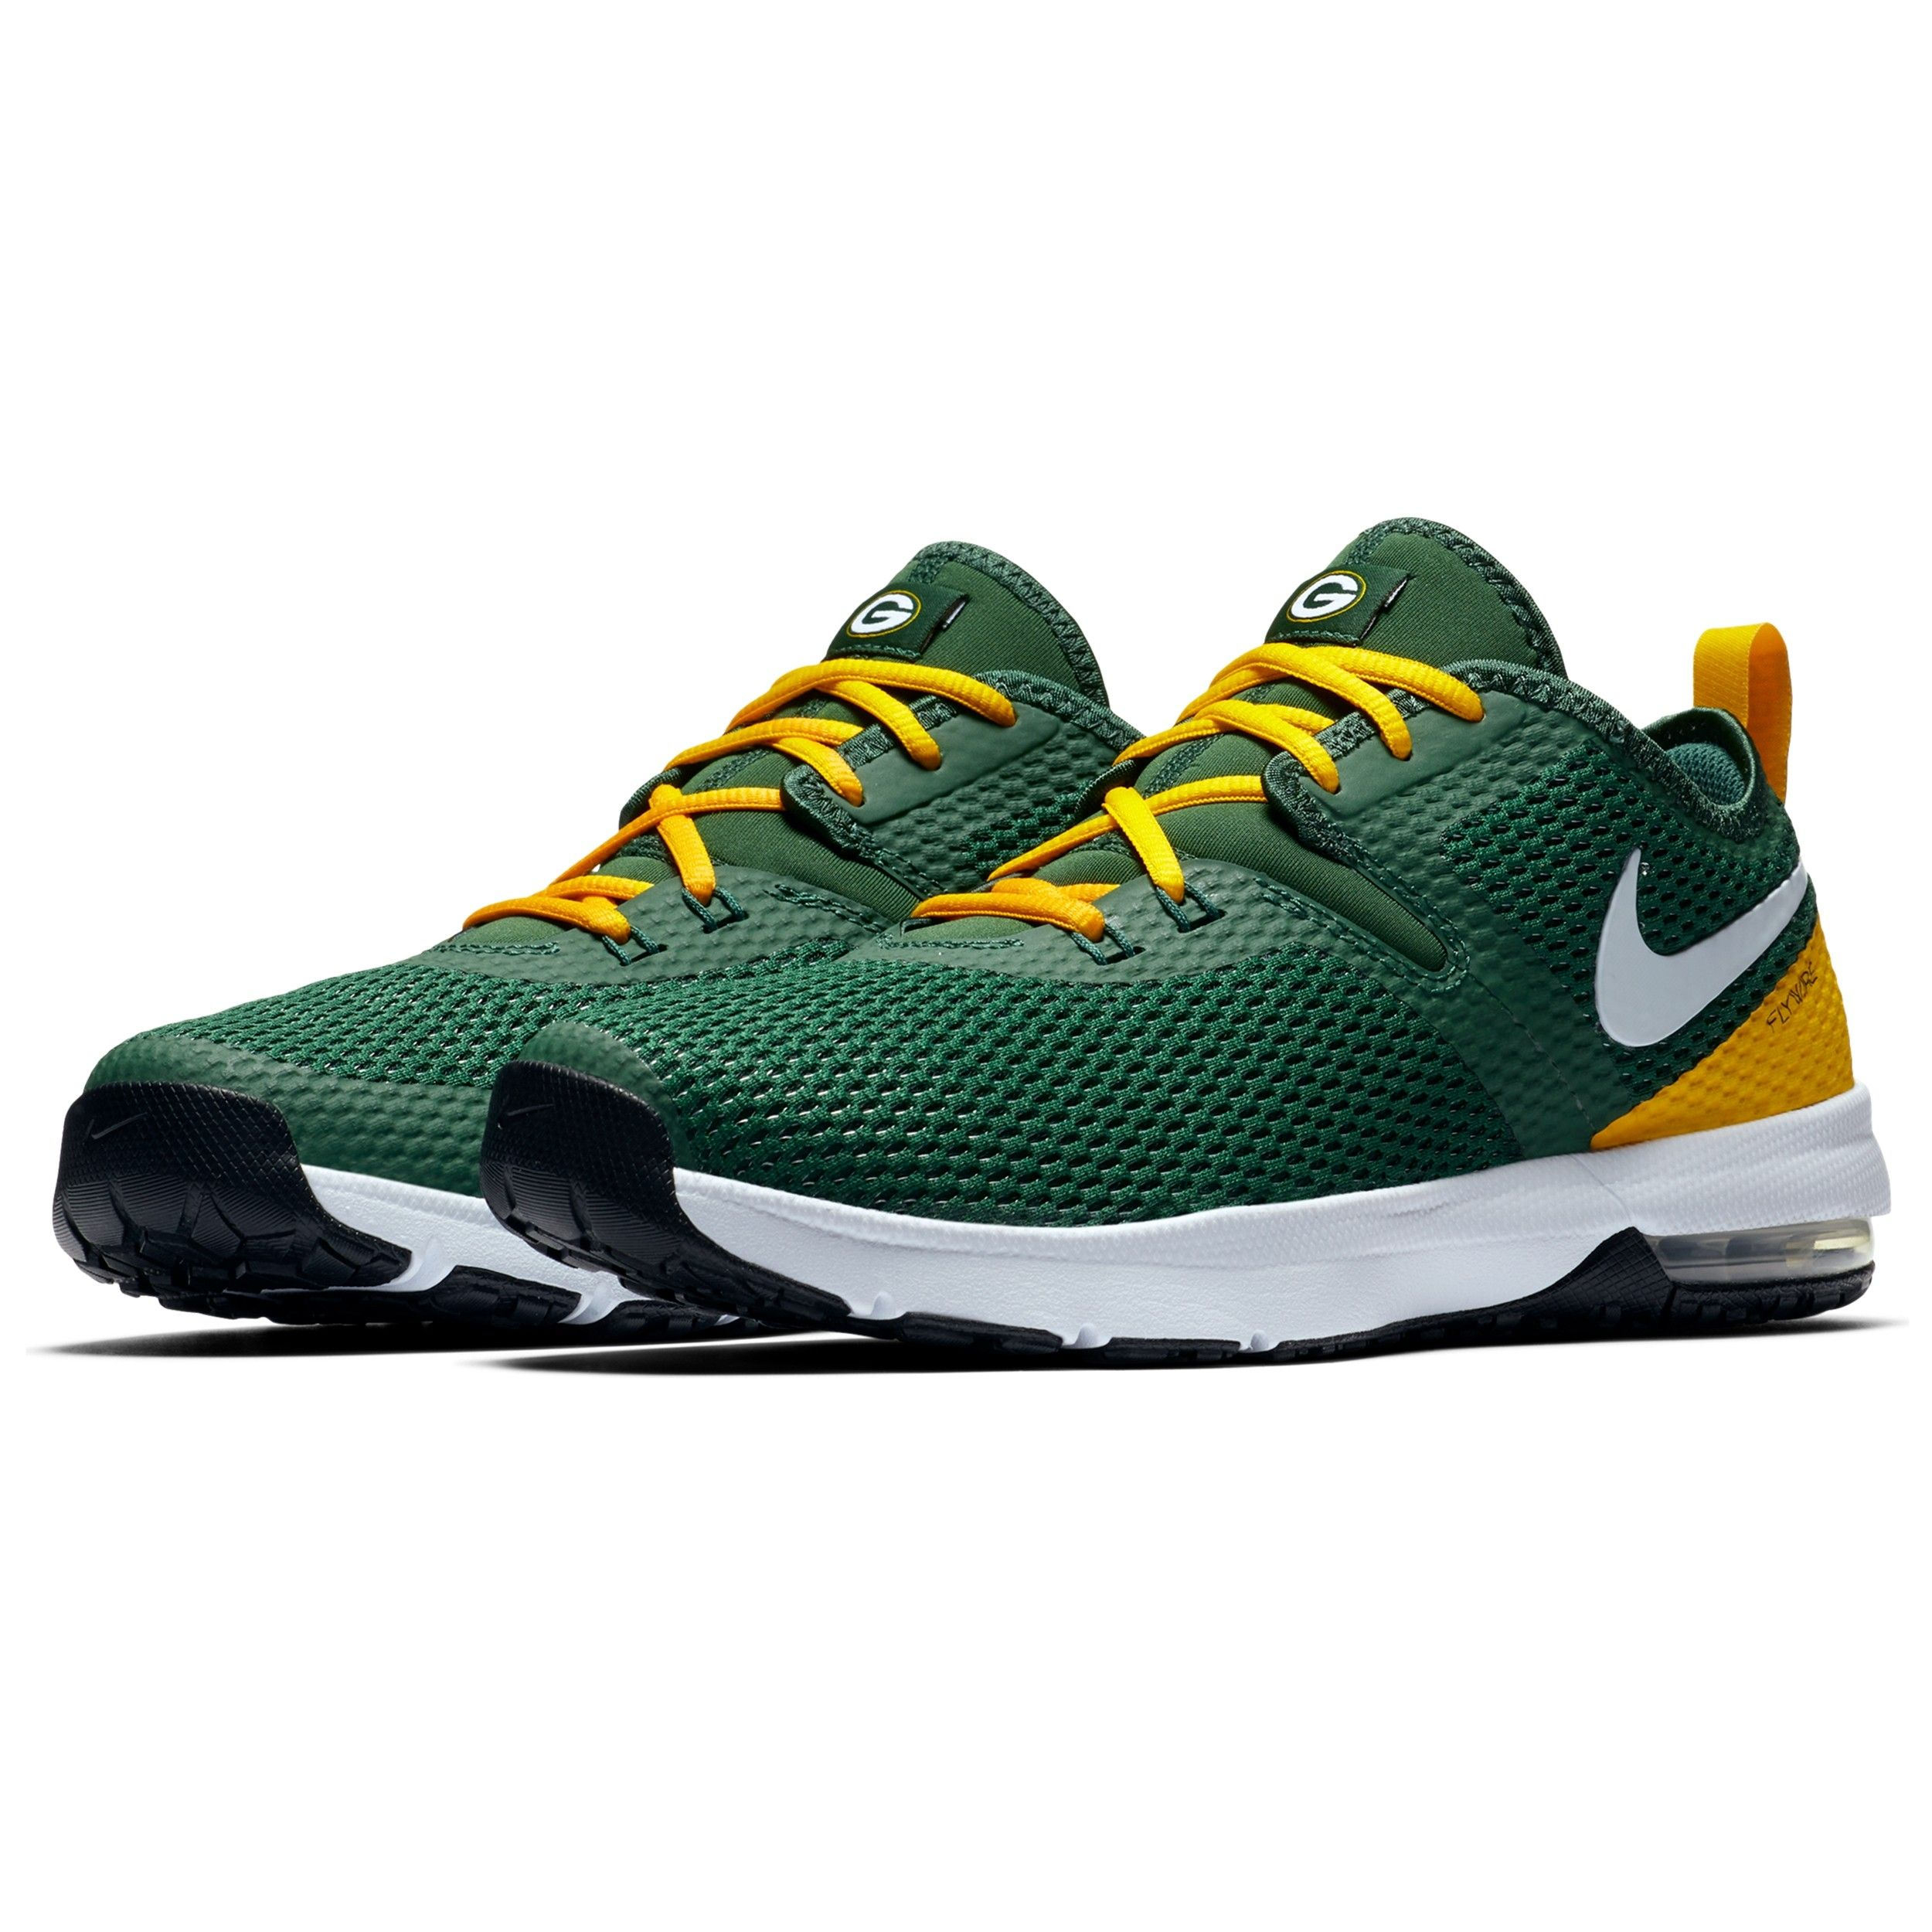 Packers Nike Air Max Typha 2 Trainer Shoe Green Bay Packers Shoes Nike Air Max Nike Gold